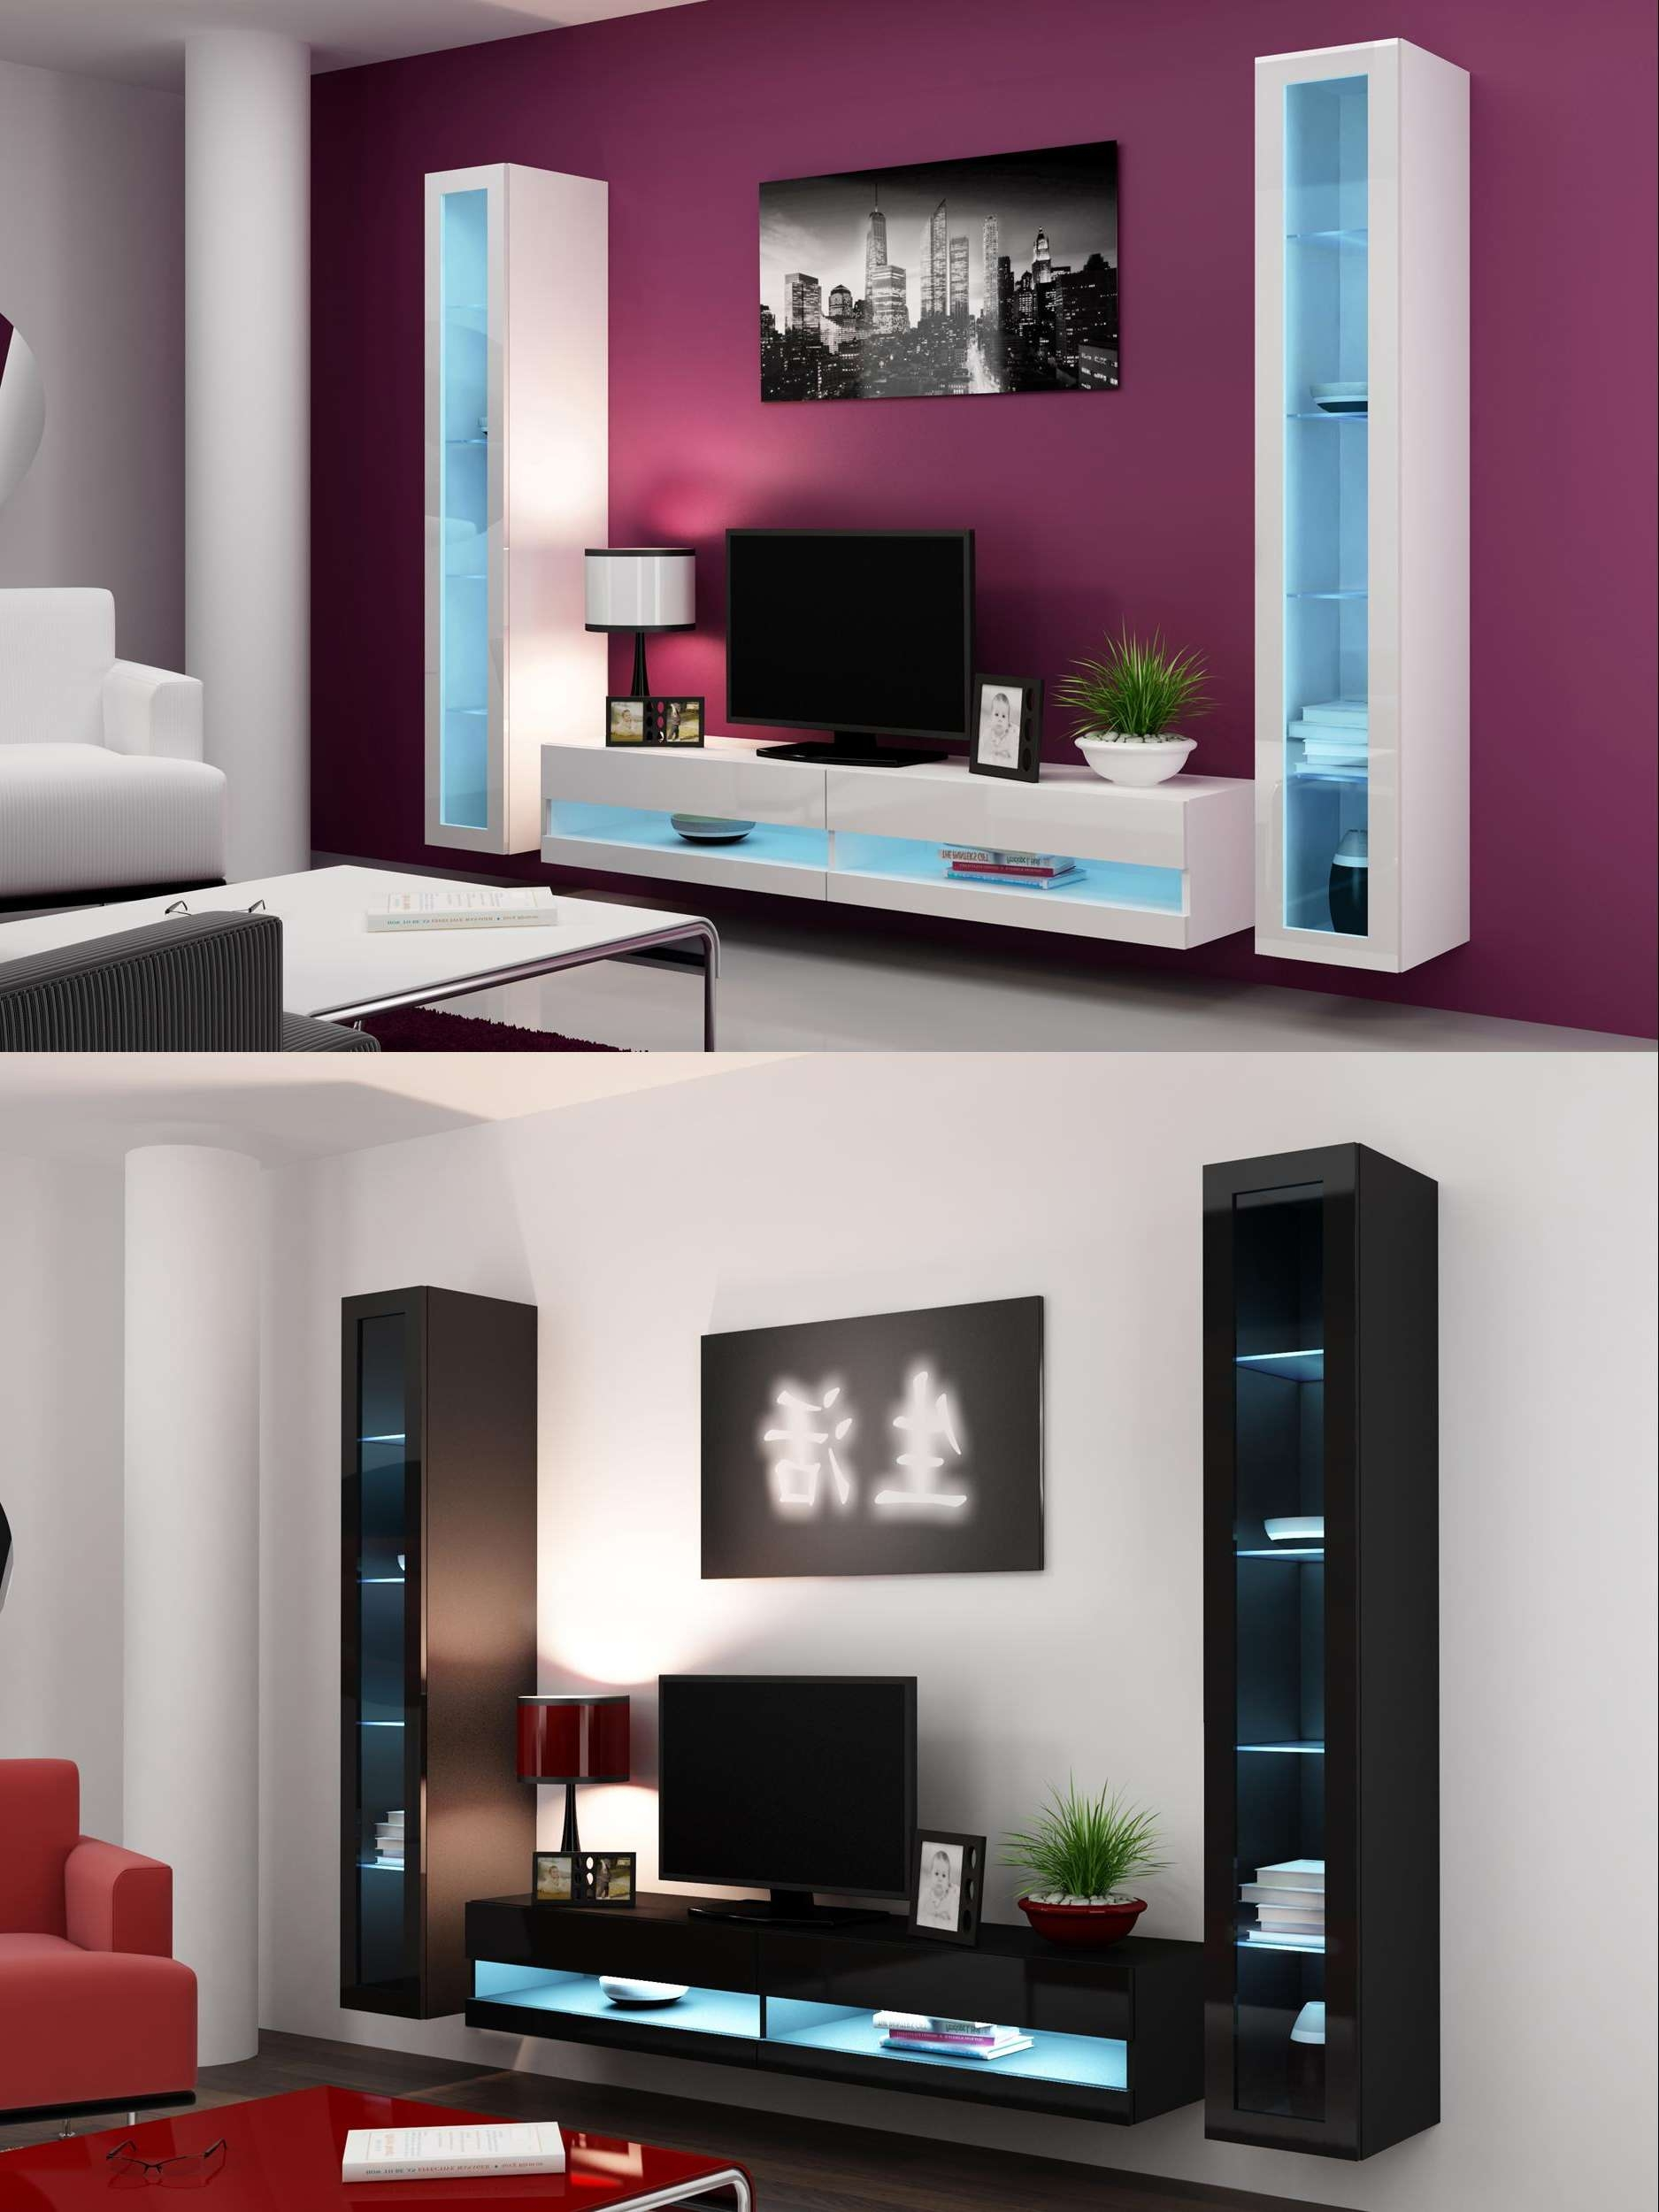 High Gloss Living Room Set With Led Lights, Tv Stand, Wall Mounted With Regard To High Gloss Tv Cabinets (View 9 of 20)